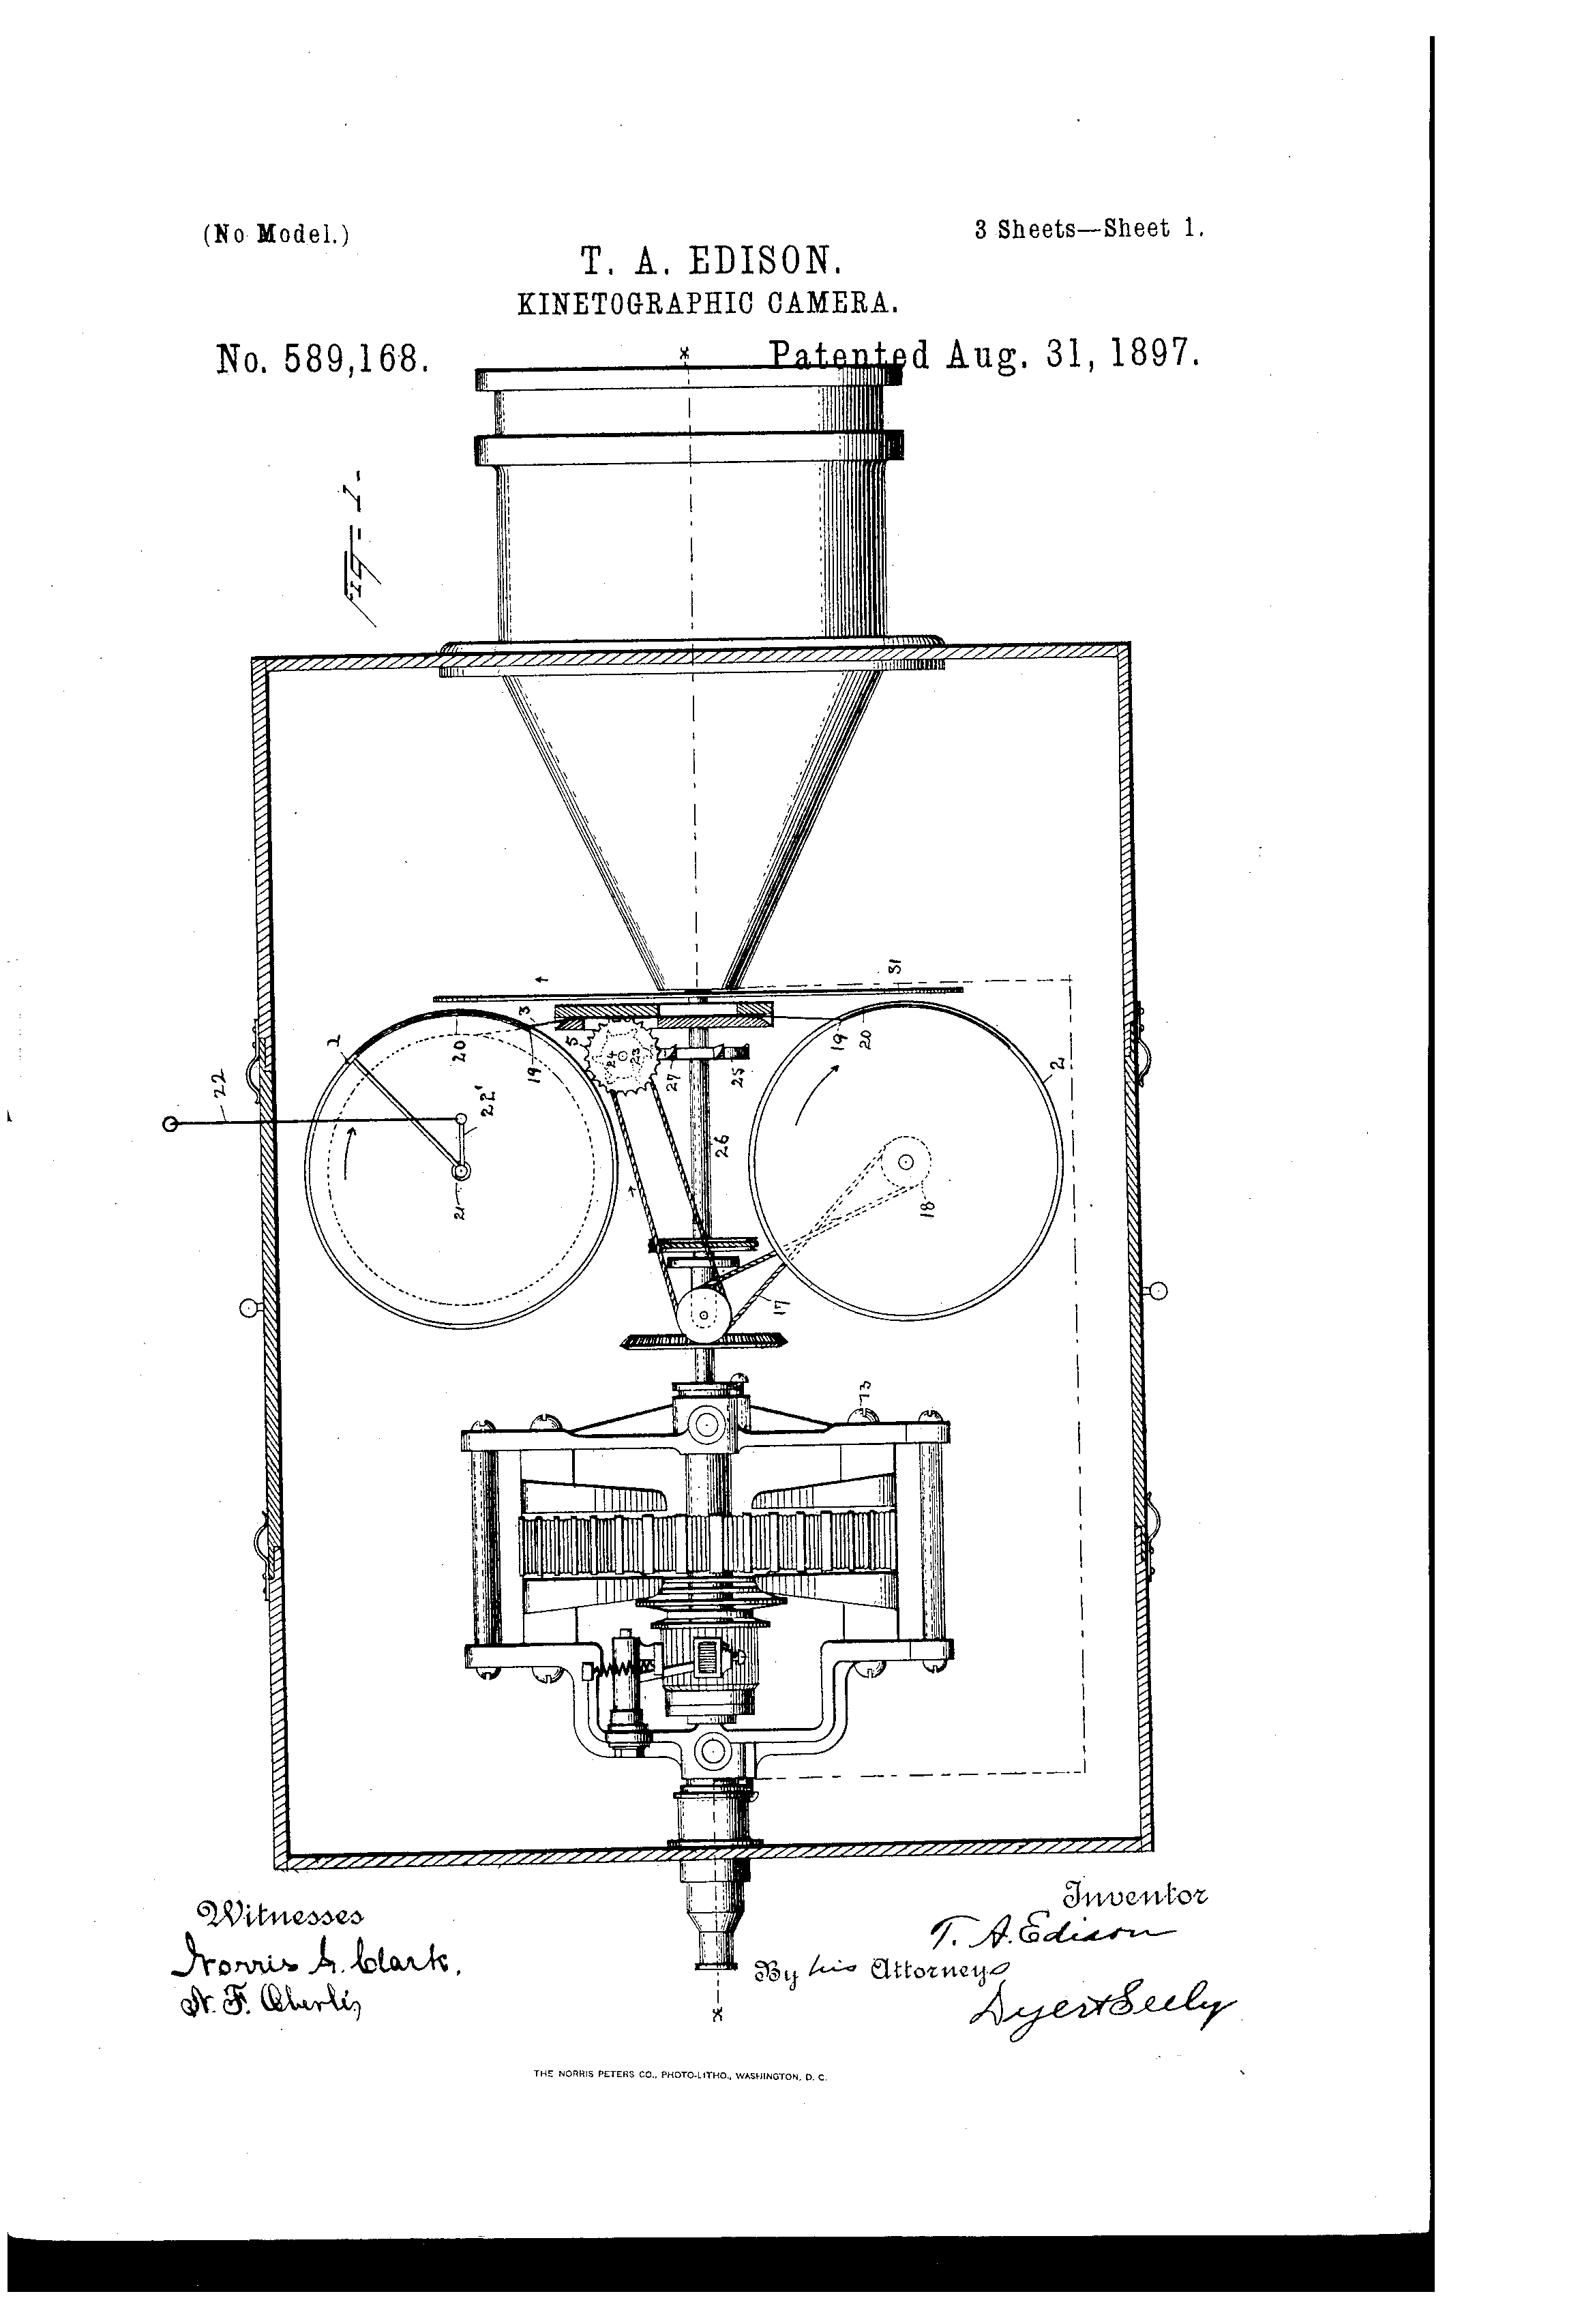 Kinetografo de Edison gruas en Google Patents